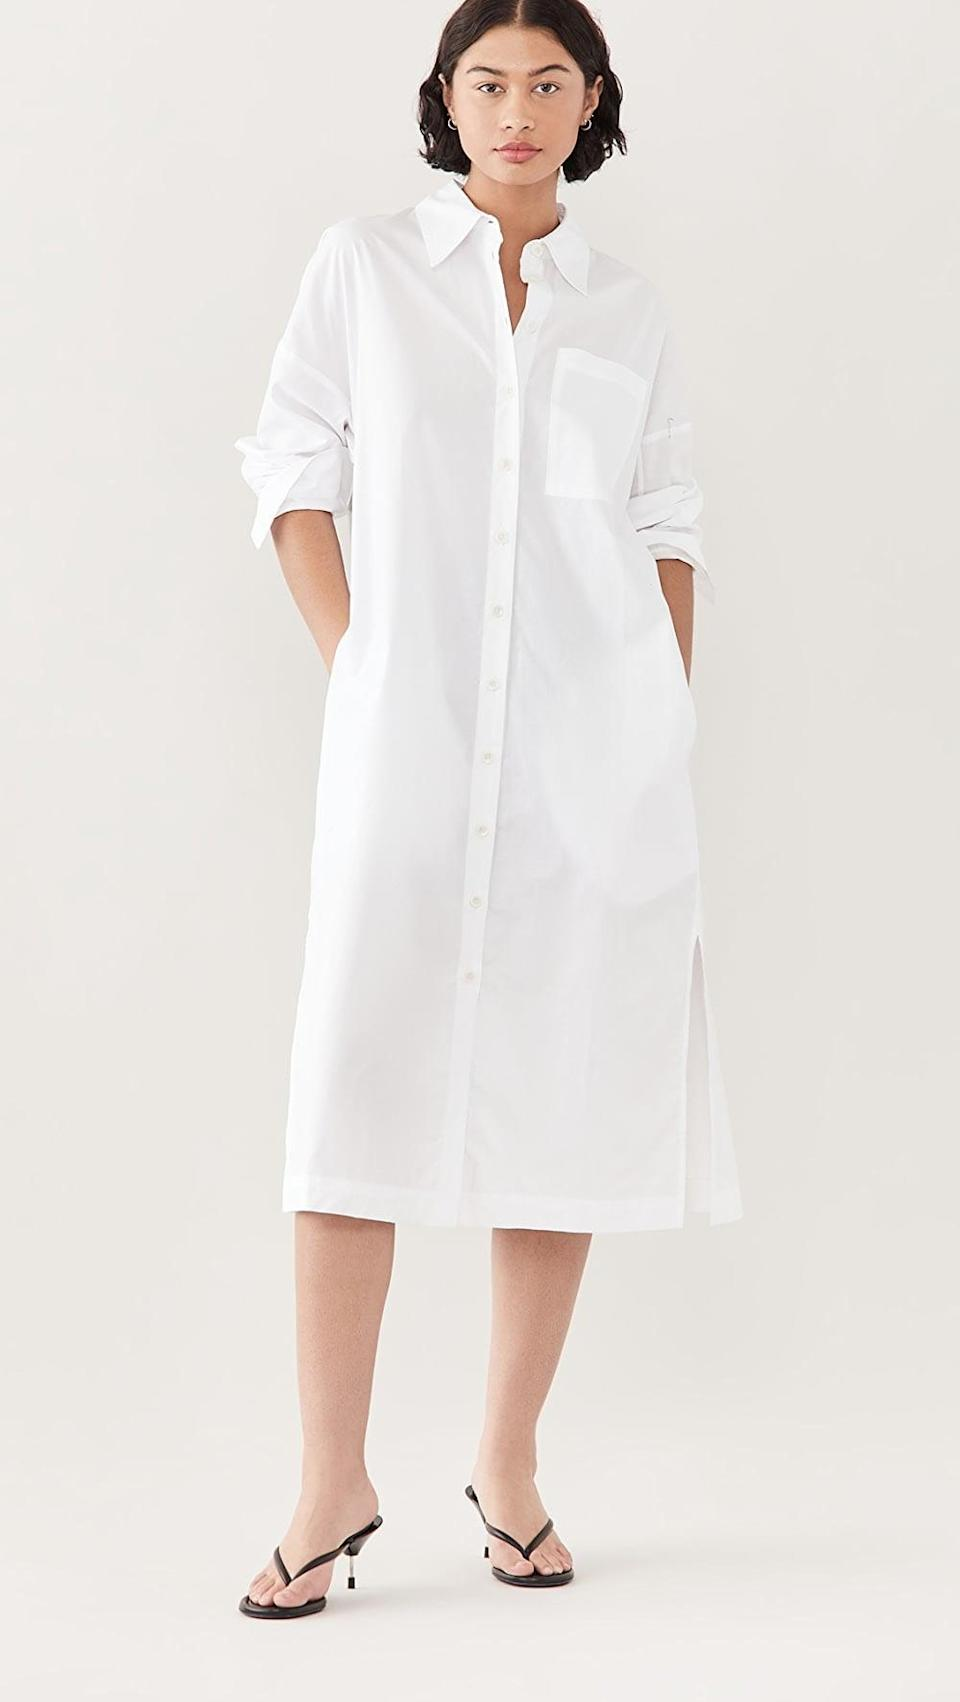 <p>This <span>Tibi The Leisuresuit Shirtdress</span> ($345) is so versatile. You can wear it so many different ways, but it's oversized in the best way possible.</p>